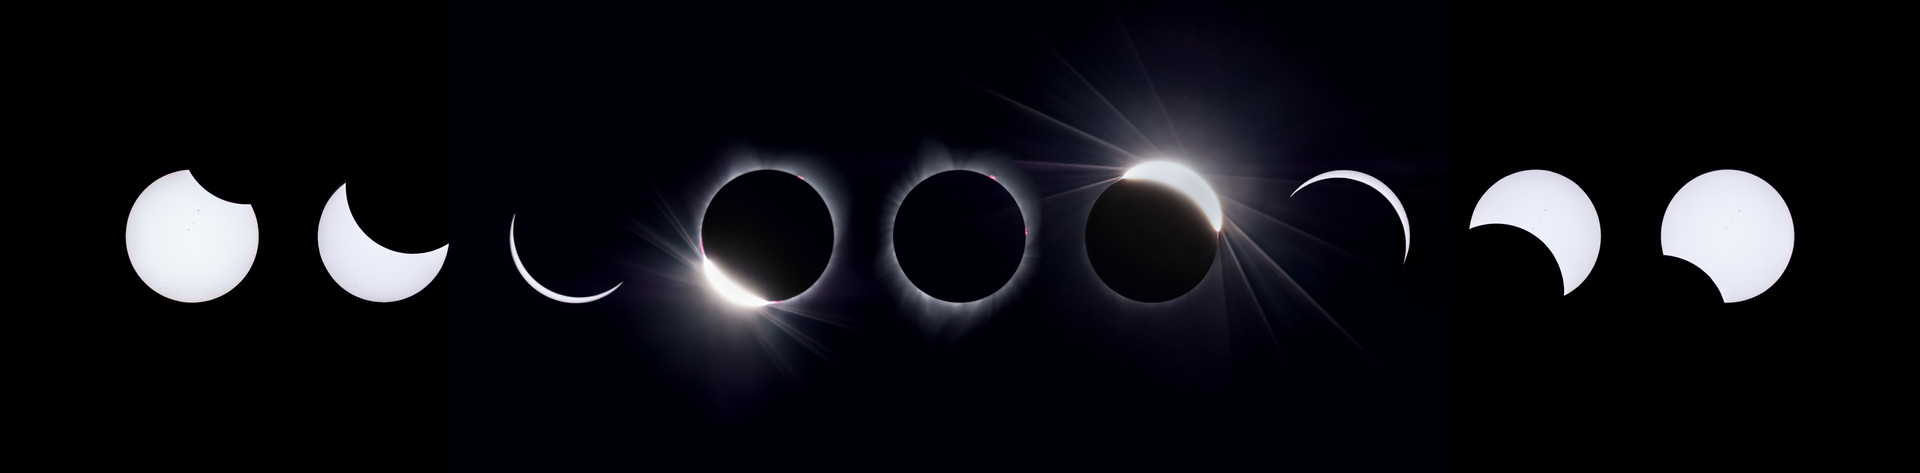 Sequence of Totality I